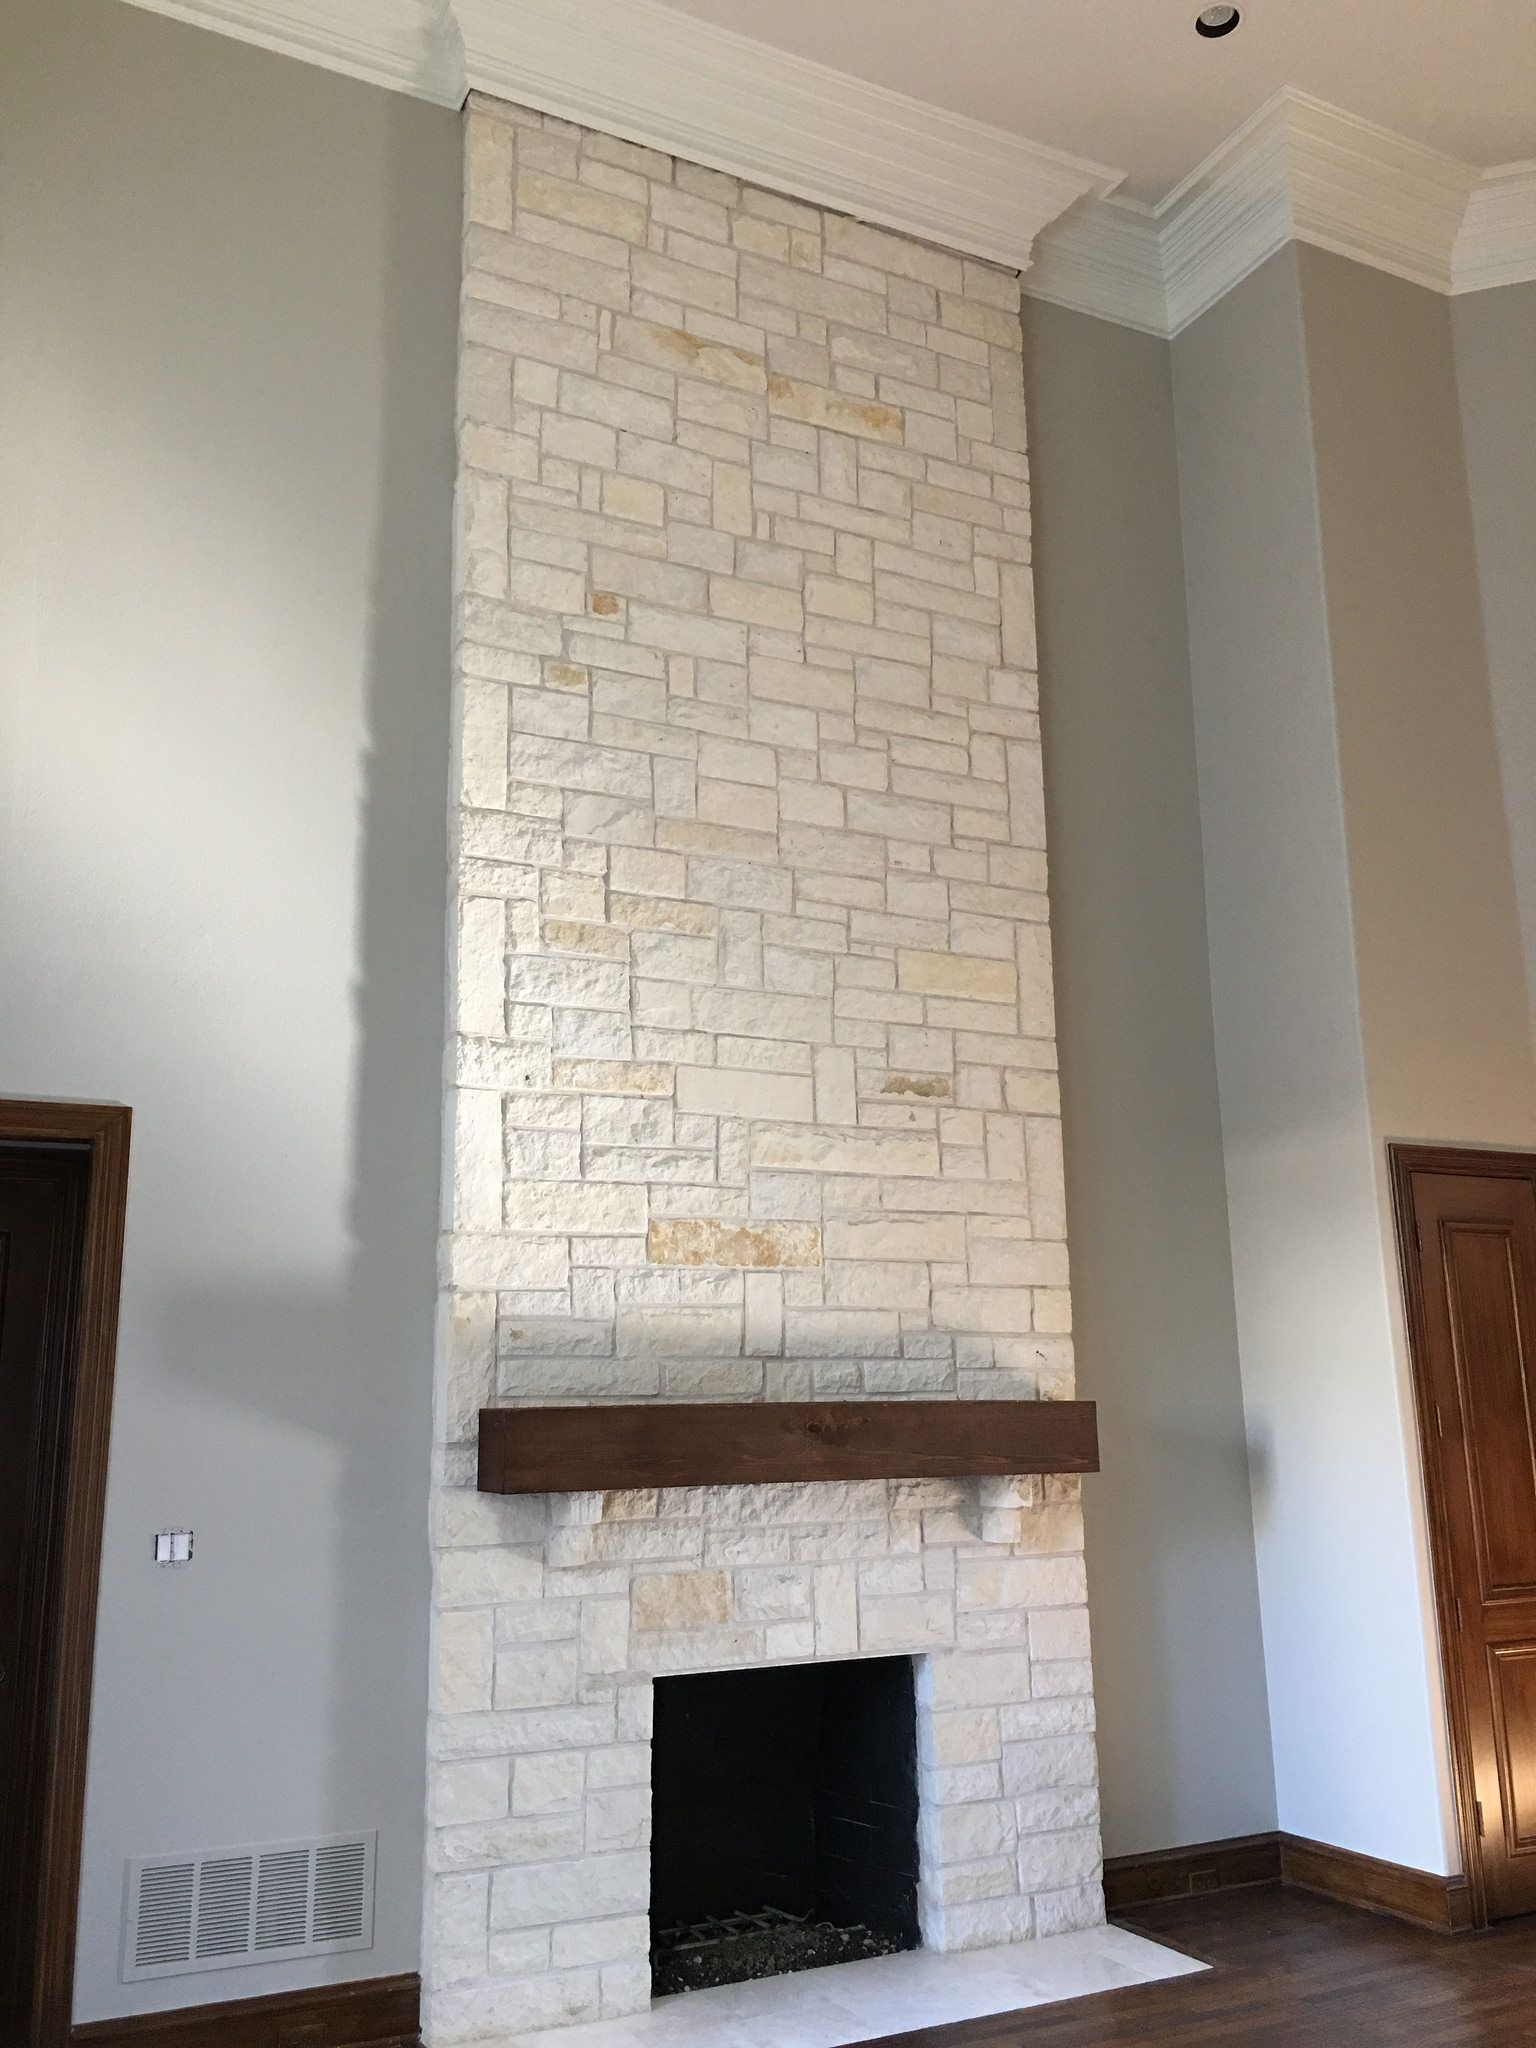 austin stone fireplace | Full Austin Stone Fireplace with Raised ...